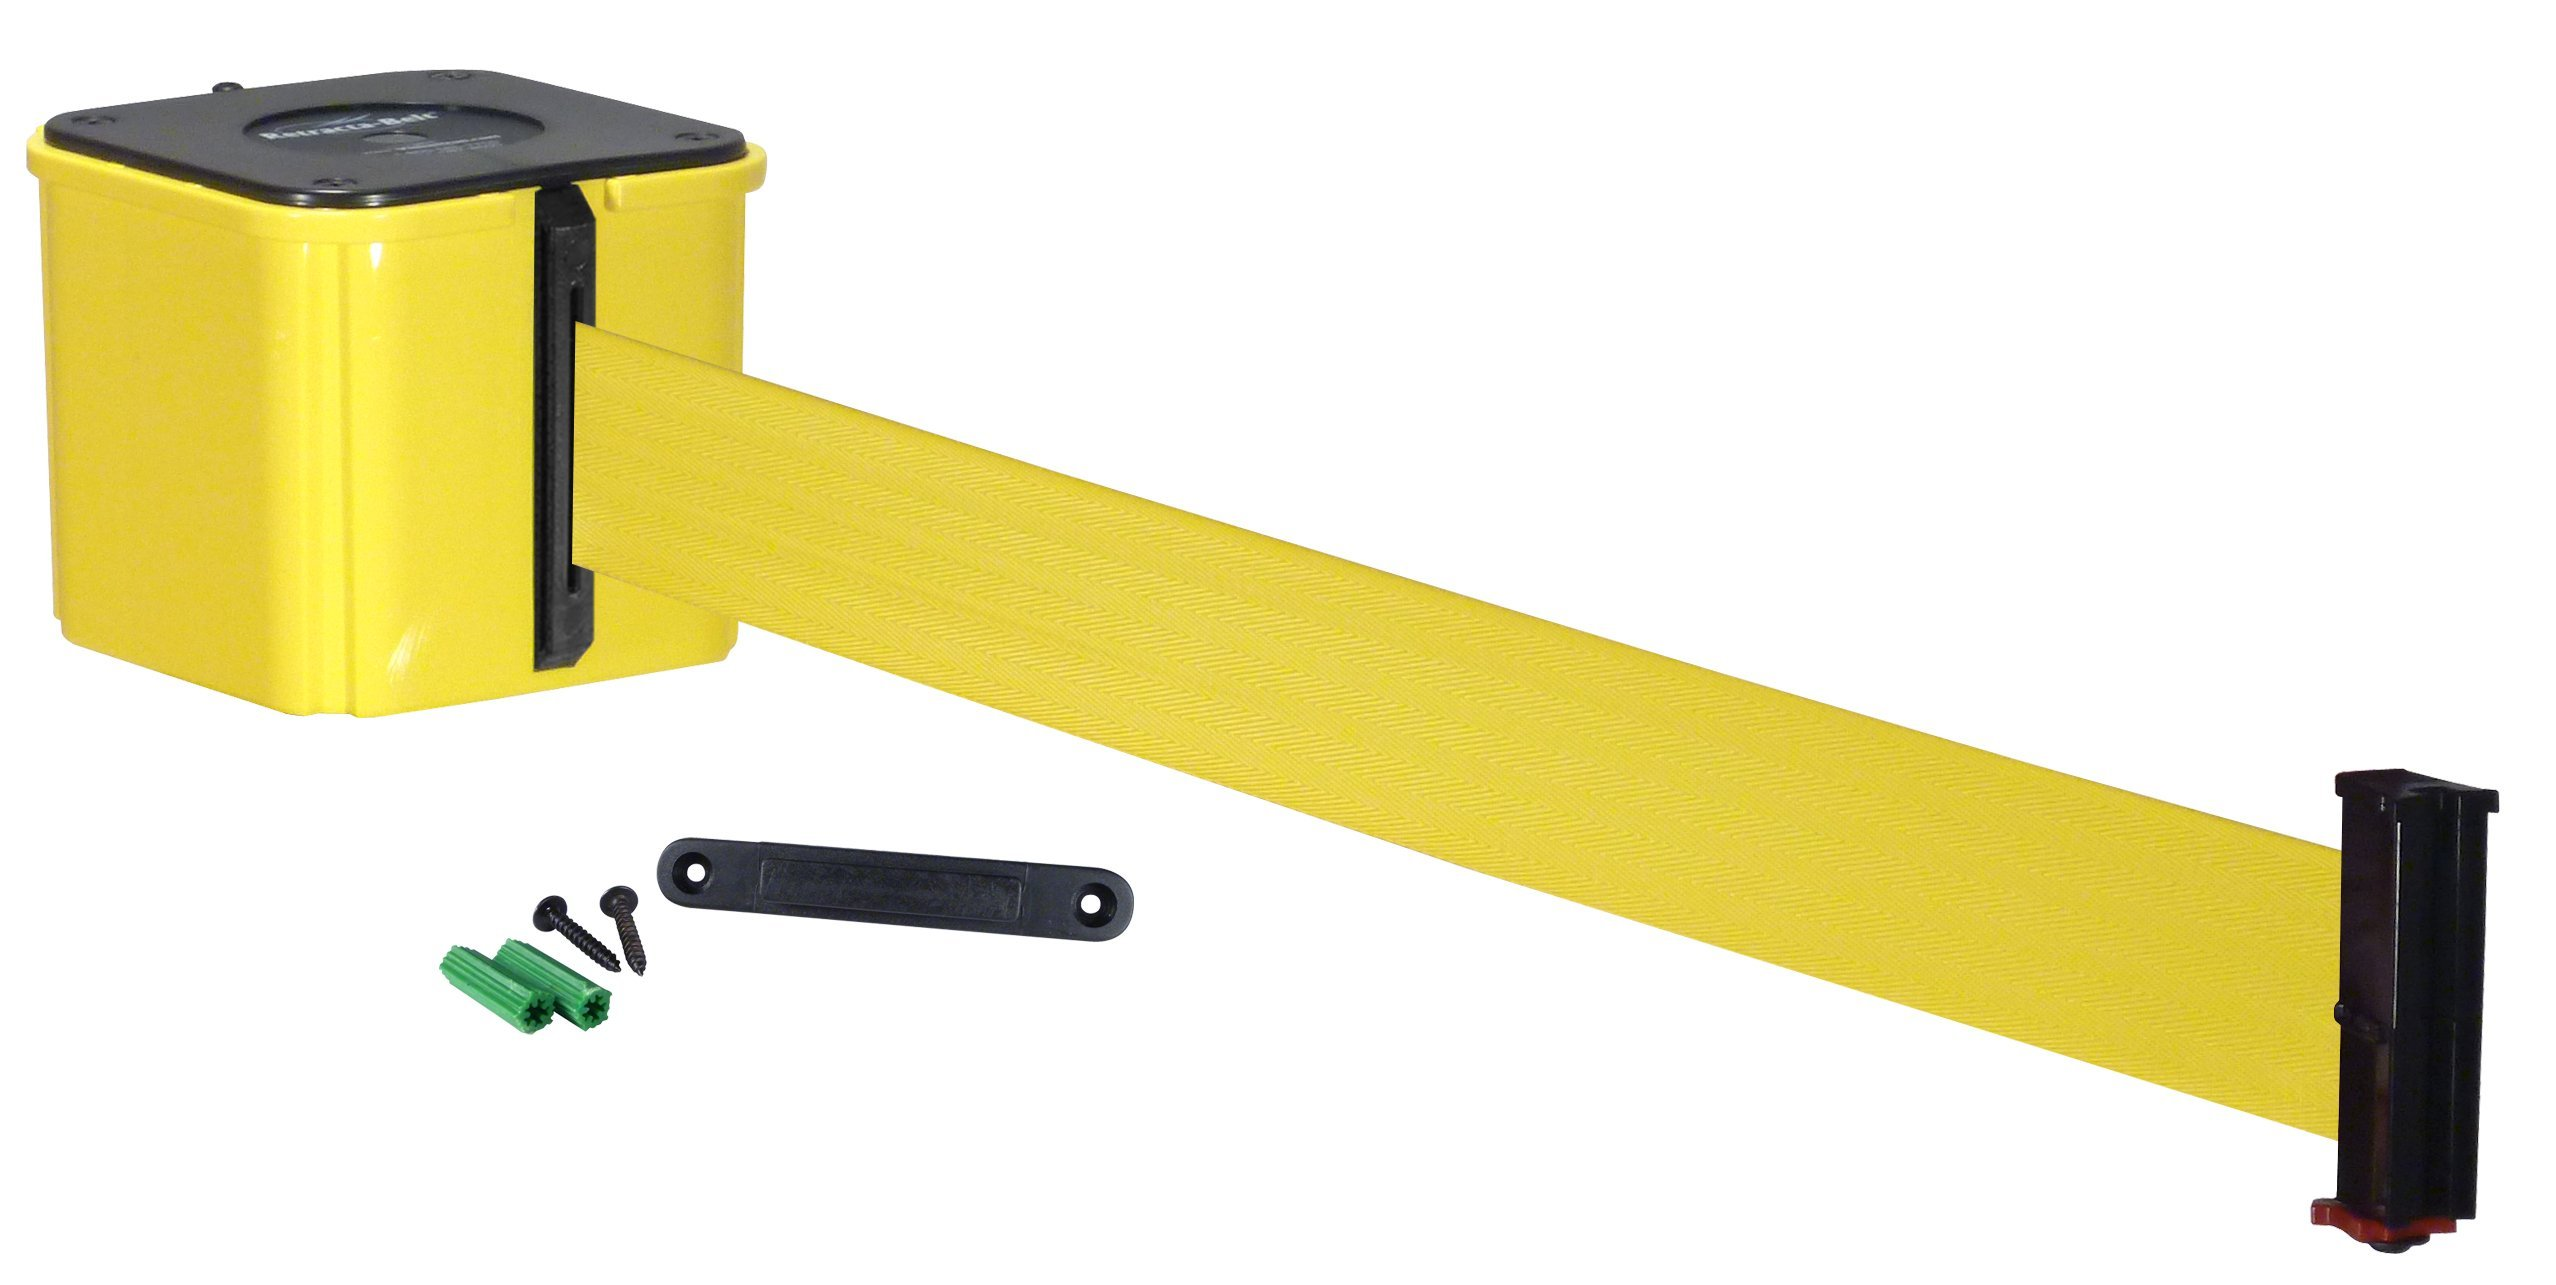 Visiontron WM412-auto-20YW-YW Economy Wall Mount 20' Automatic Retracting Unit w/Standard Fixed/Removable Wall Plate - Yellow with Yellow Belt, Standard Belt End